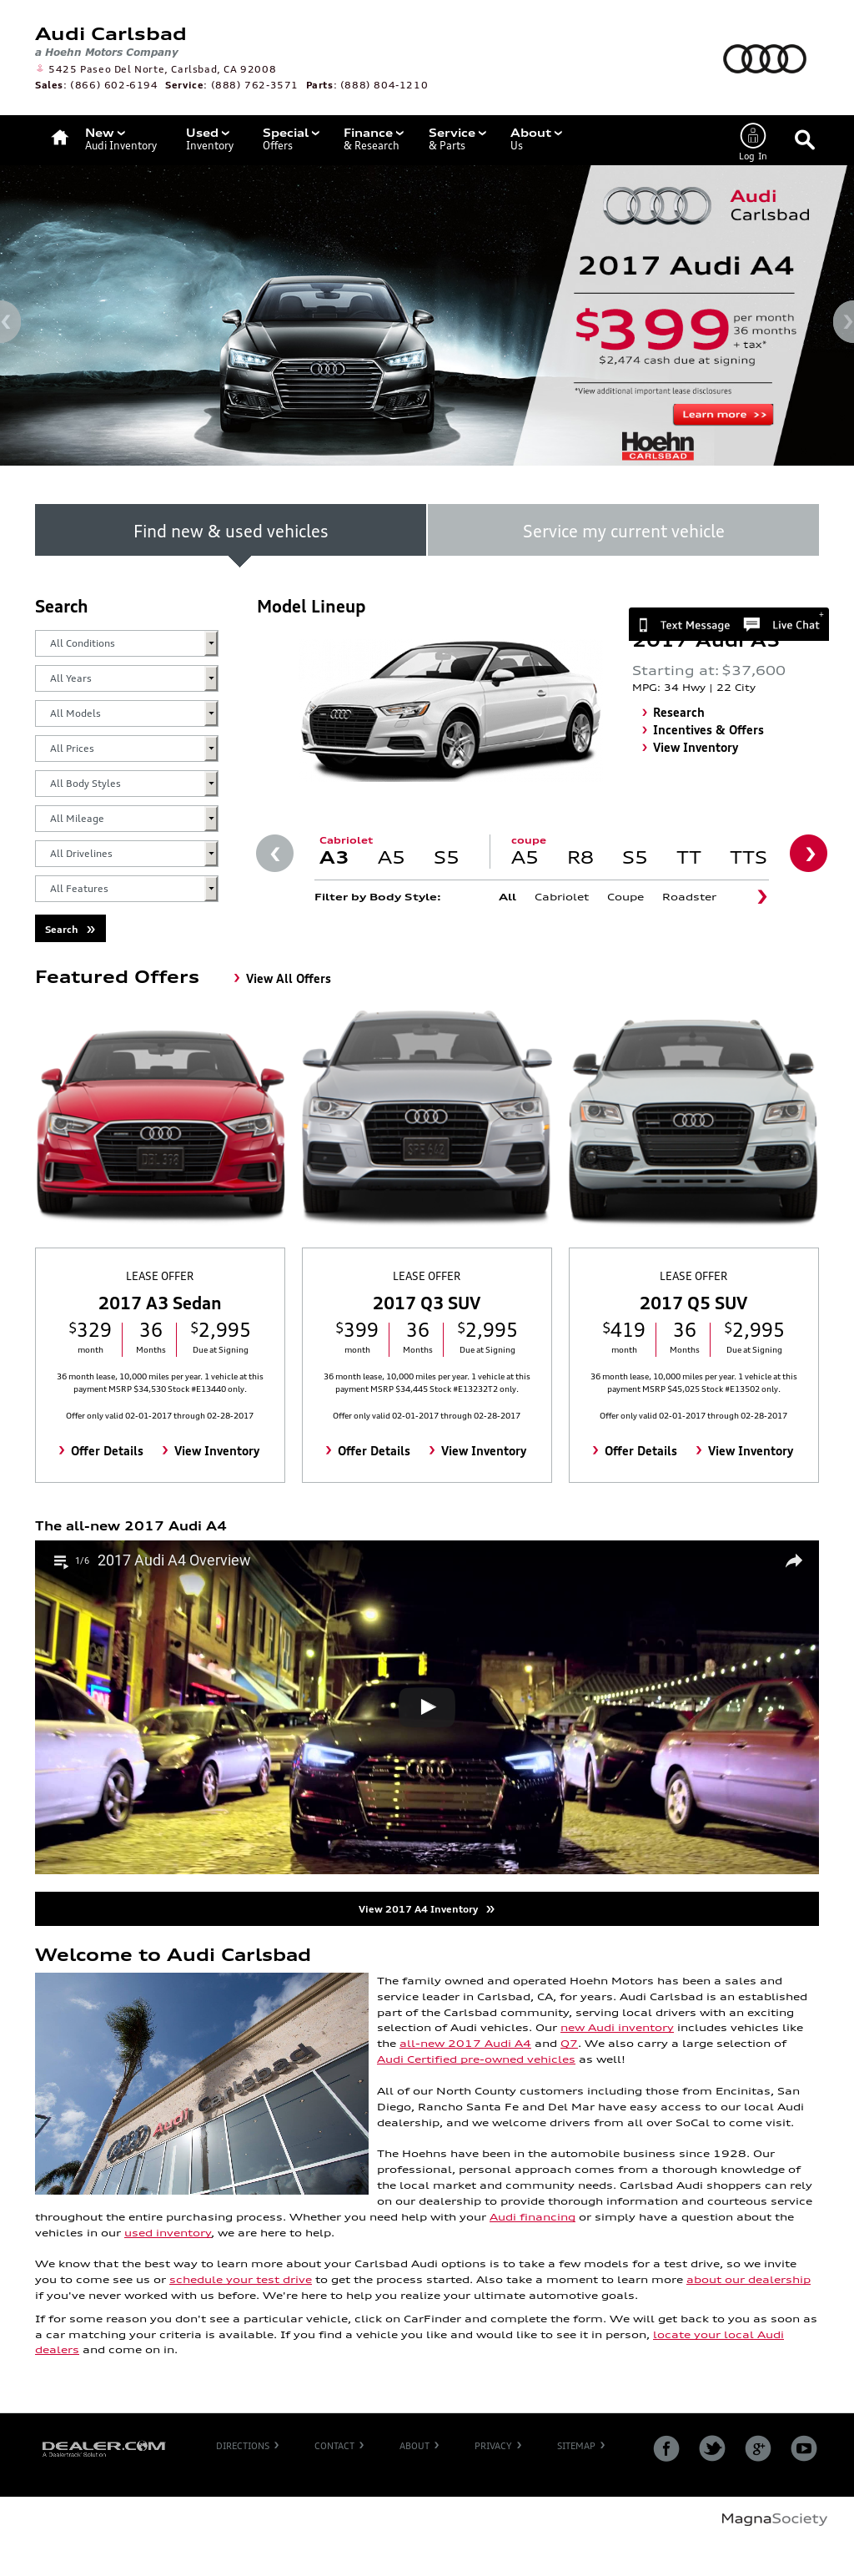 Hoehn Audi Competitors Revenue And Employees Owler